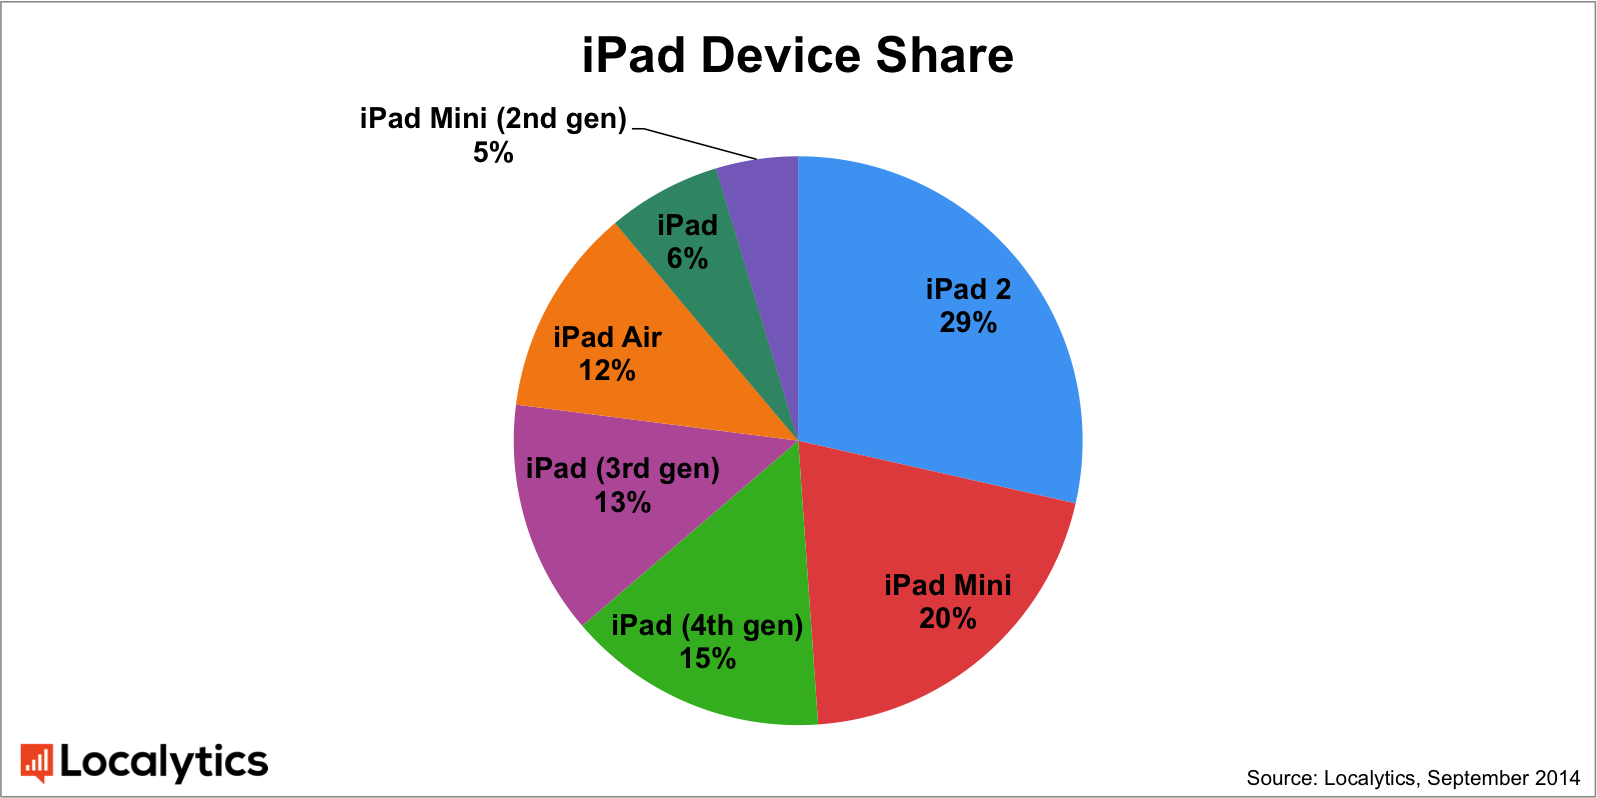 ipad_device_share